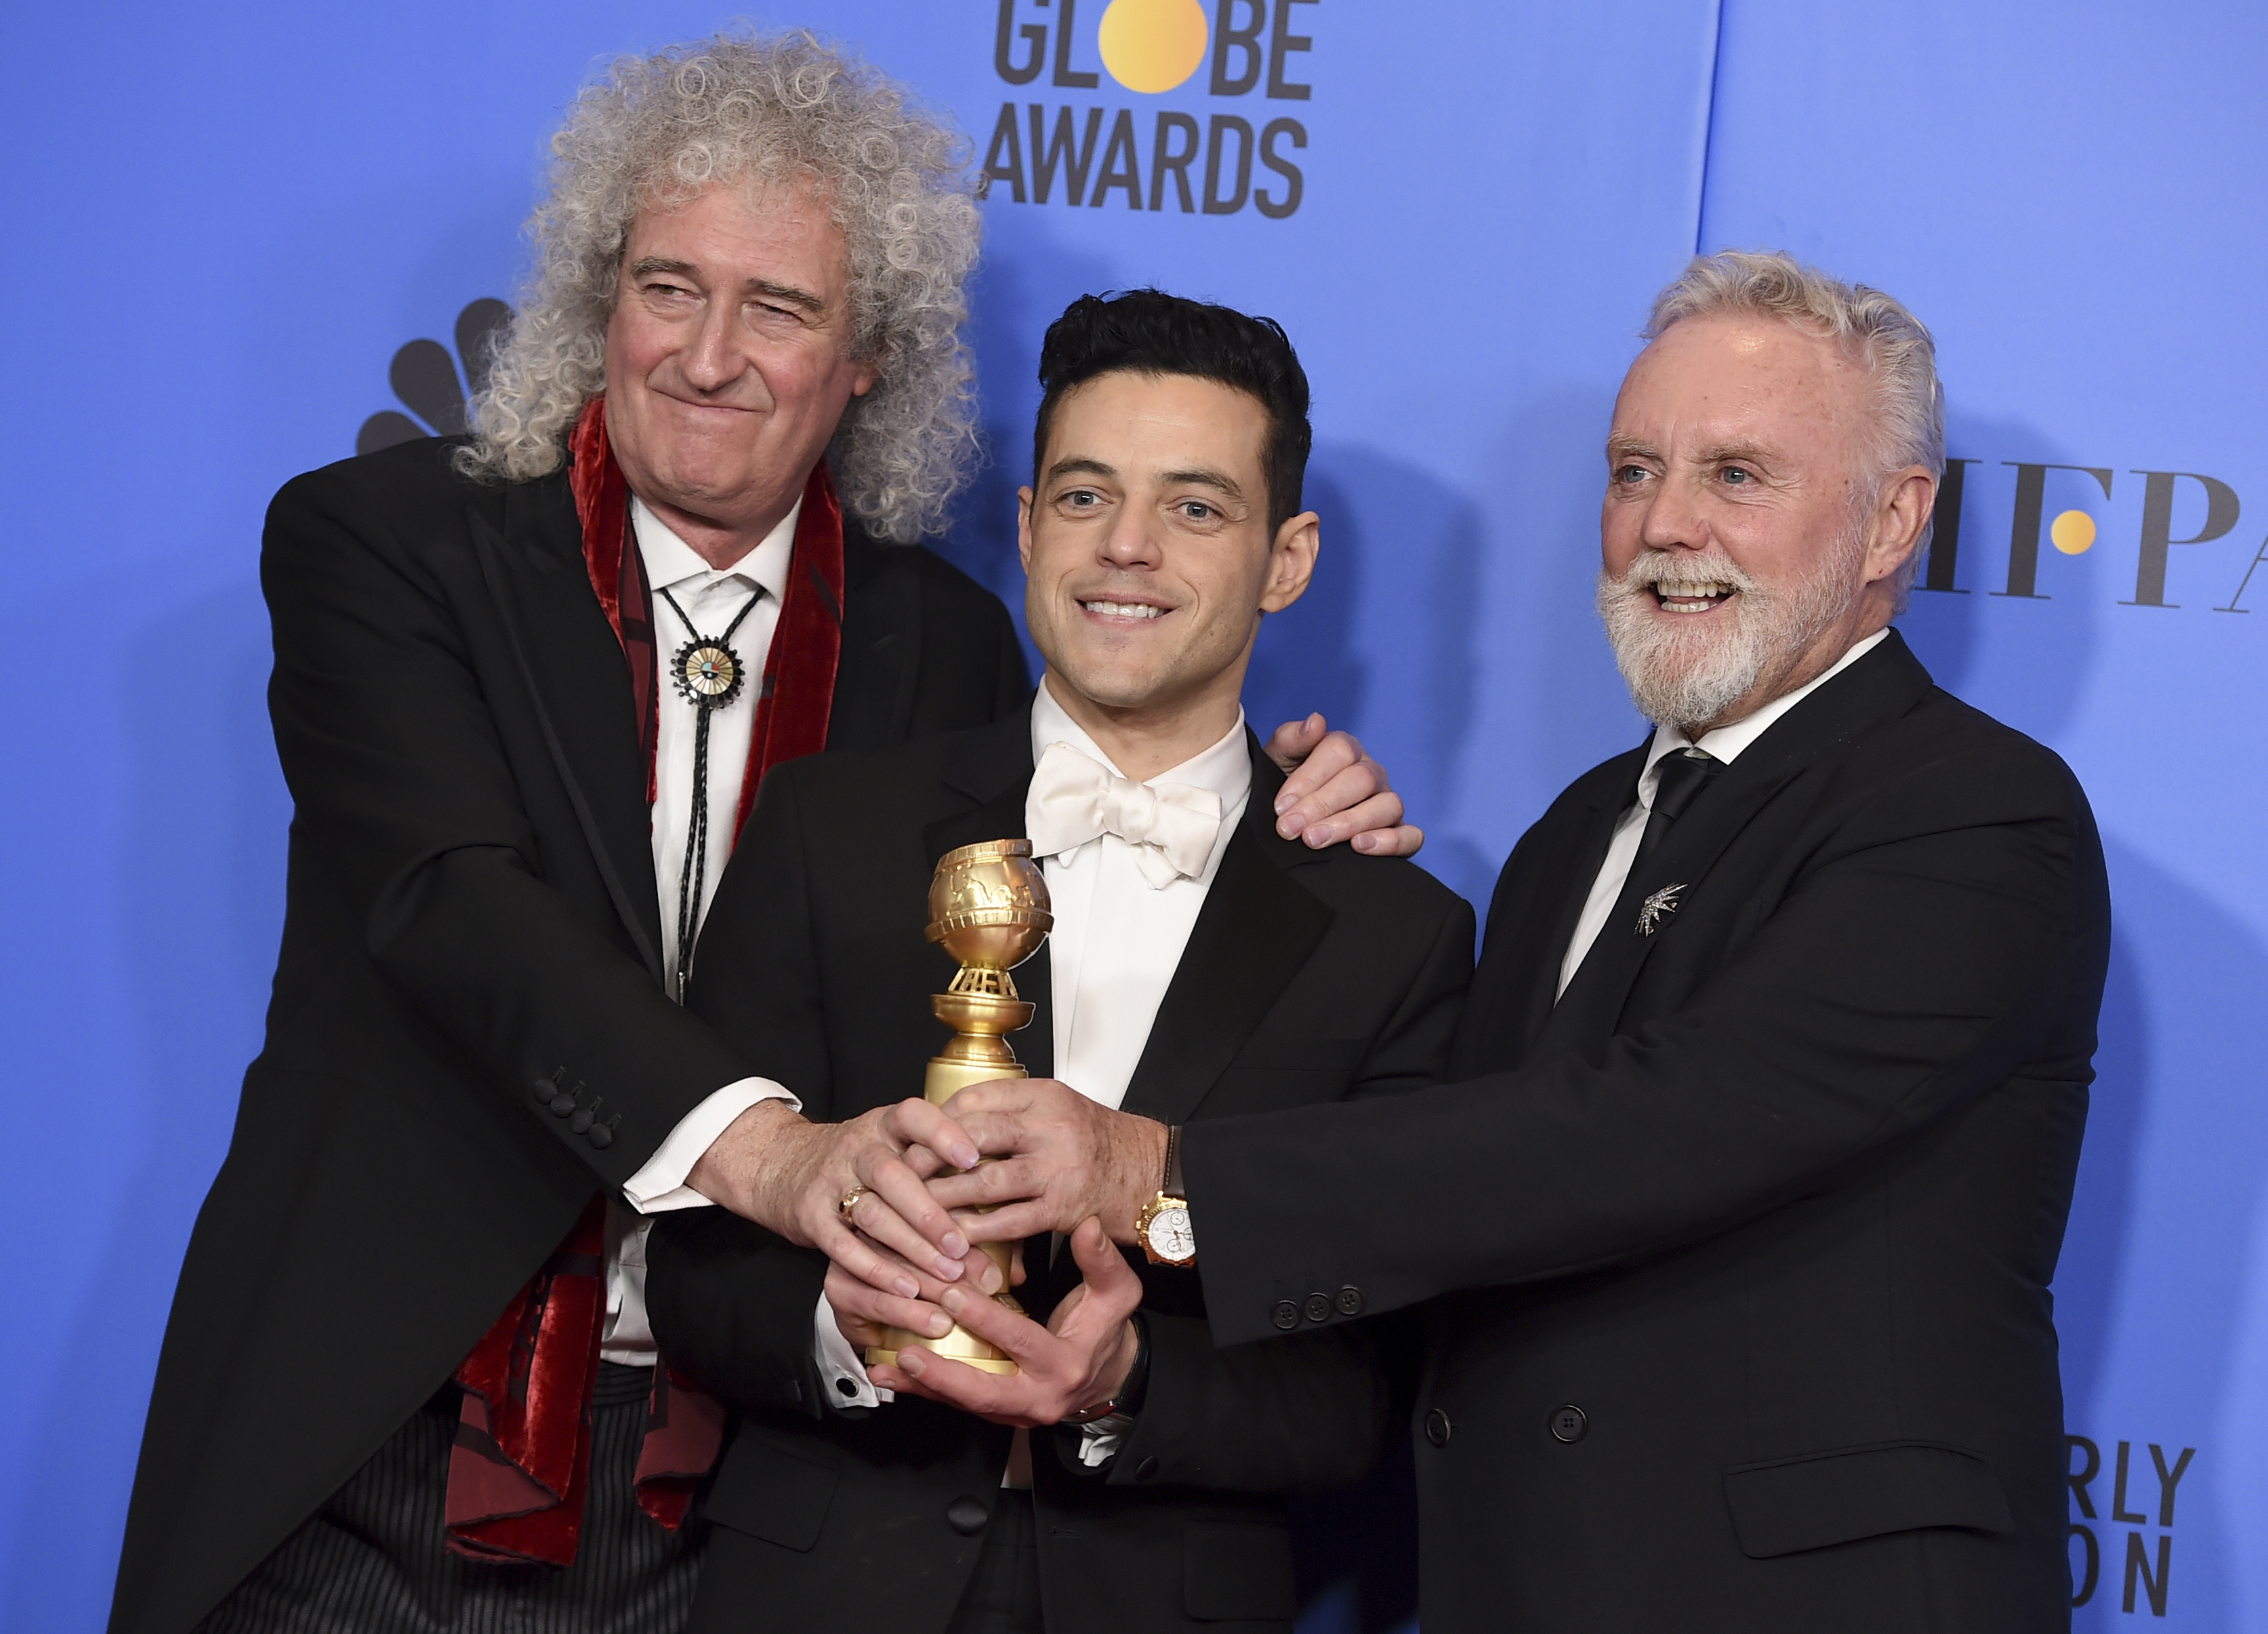 Queen guitarist Brian May, actor Rami Malek and drummer Roger Taylor. Credit: PA